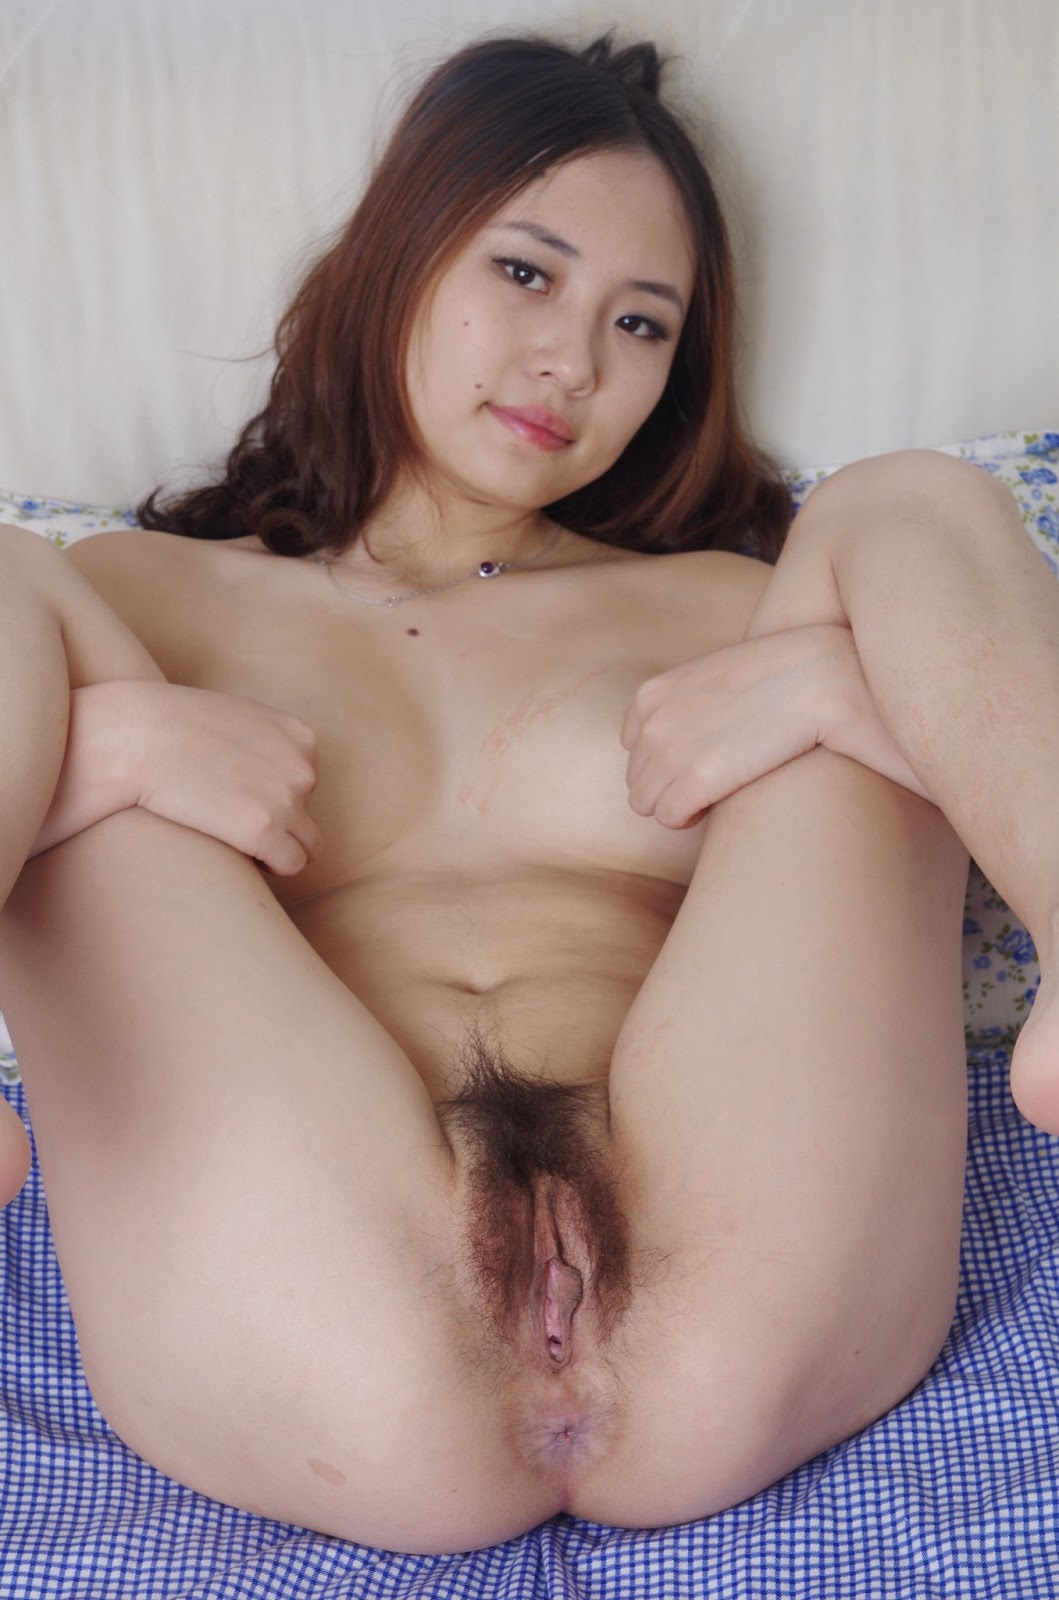 Japanese pictures naked women